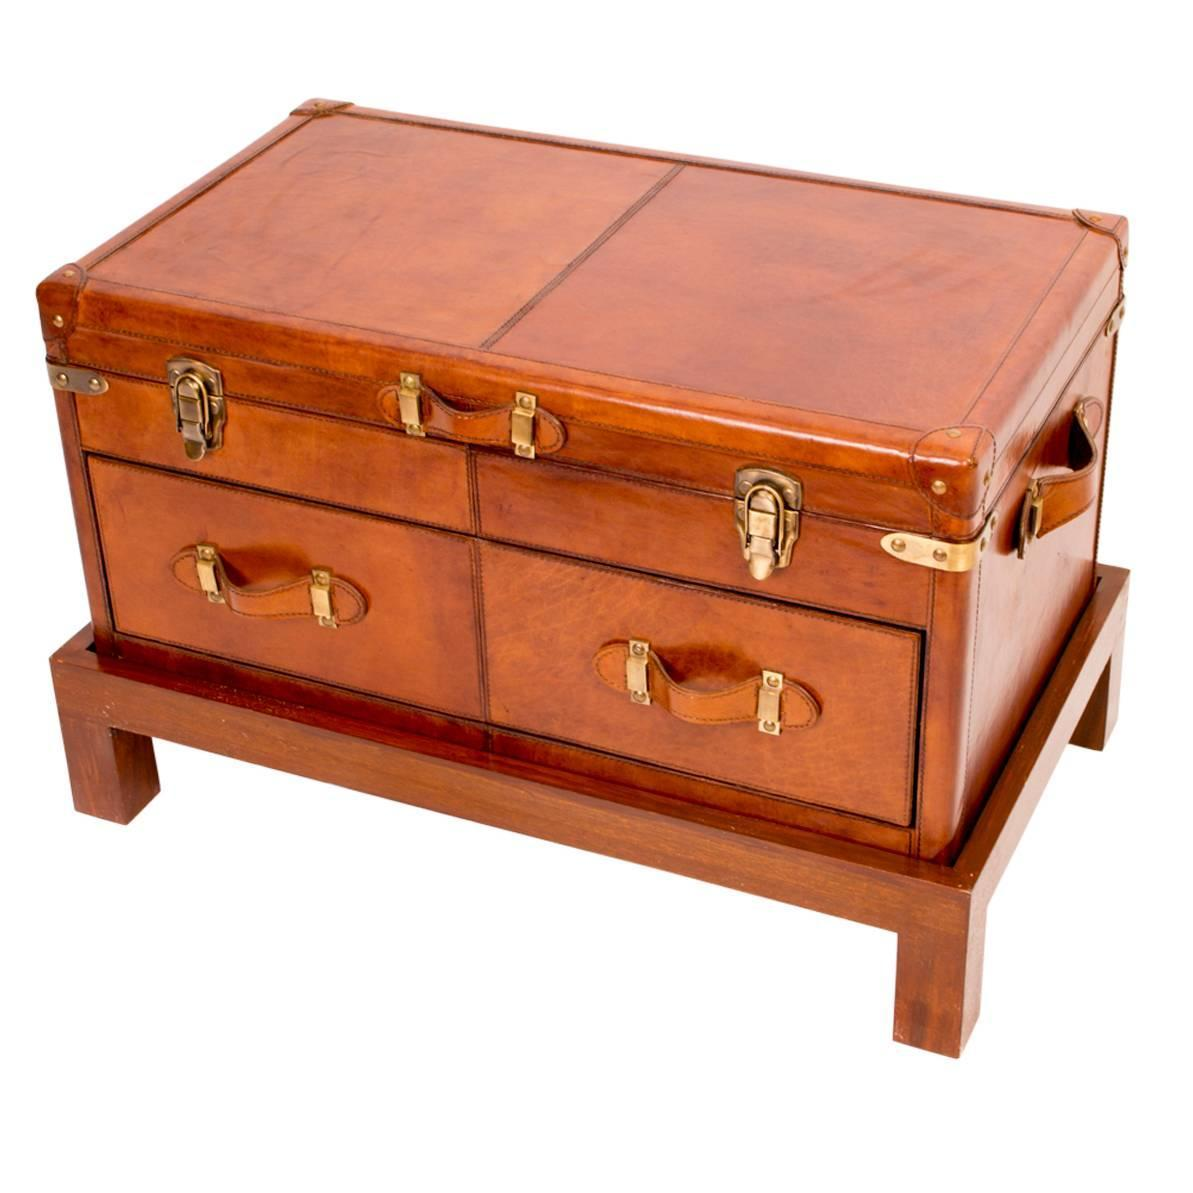 English Leather Campaign Trunk Coffee Table Luggage At 1stdibs